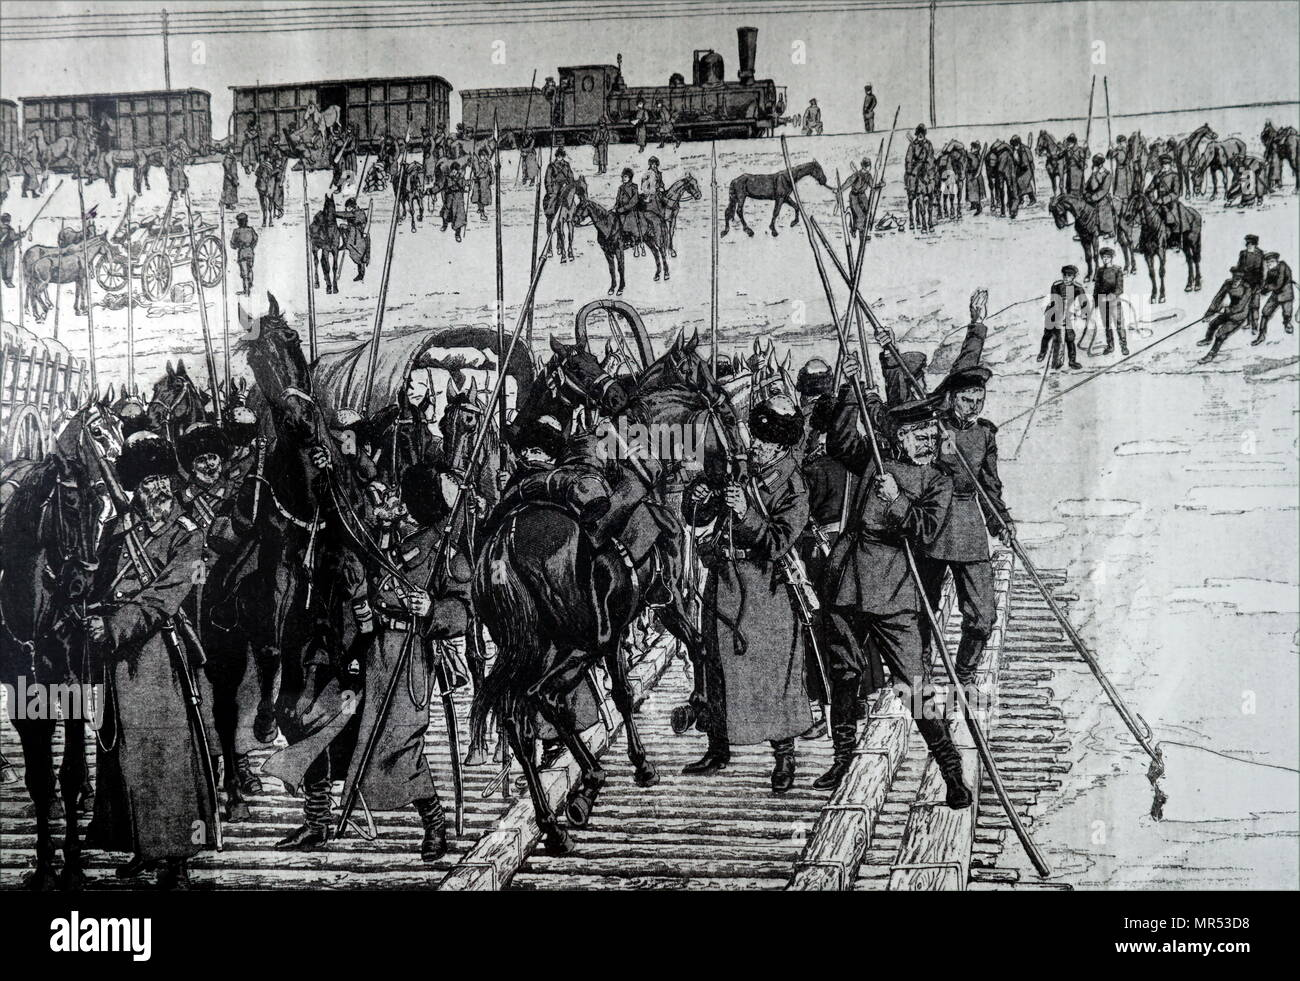 Illustration depicting a Russian cavalry using the Trans-Siberian Railway. Dated 20th century - Stock Image